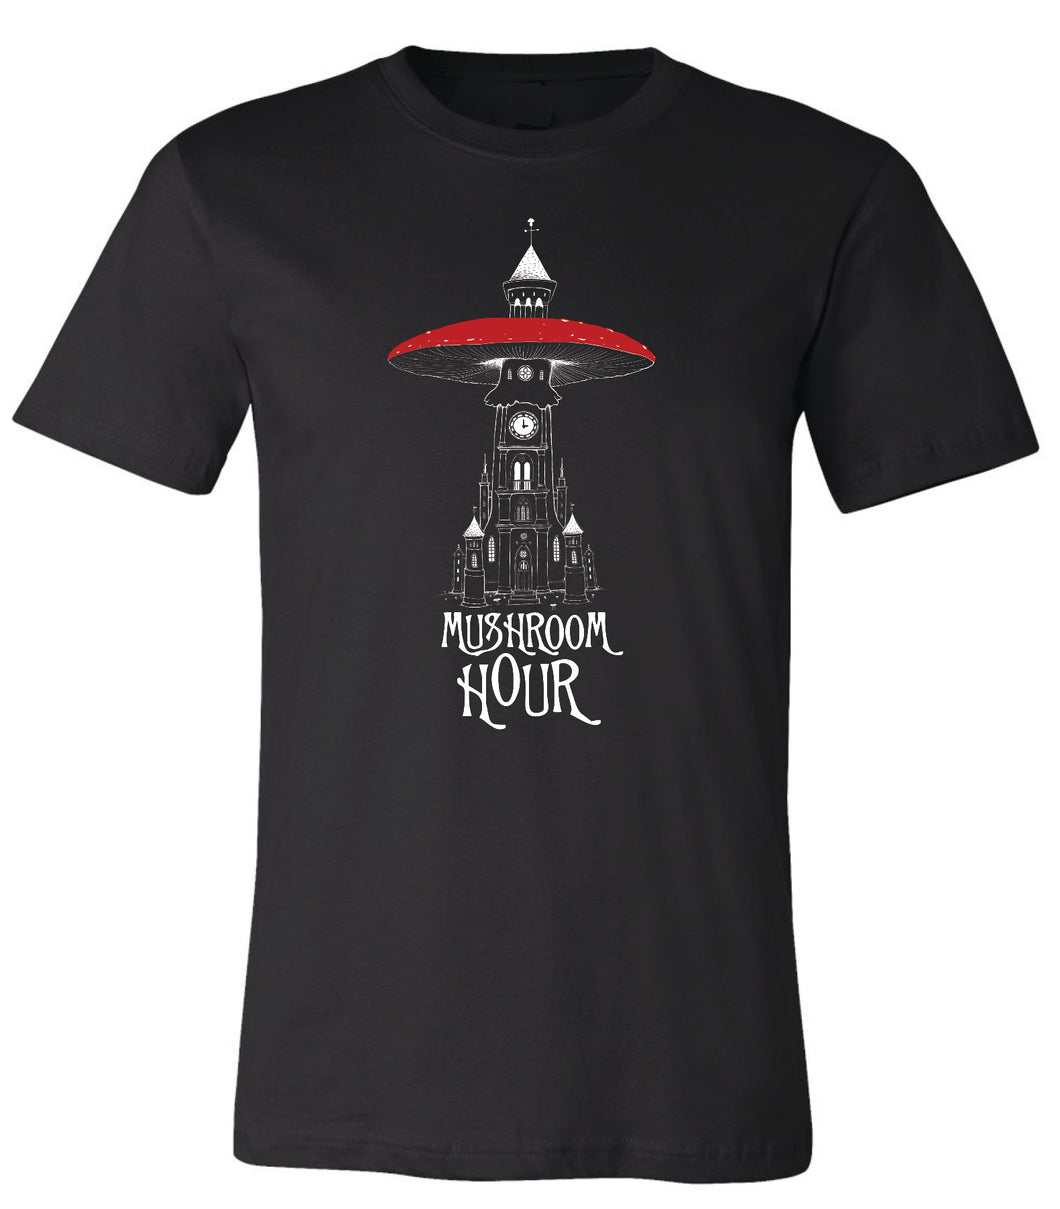 Mushroom Clocktower T-Shirt - Black, White & Red